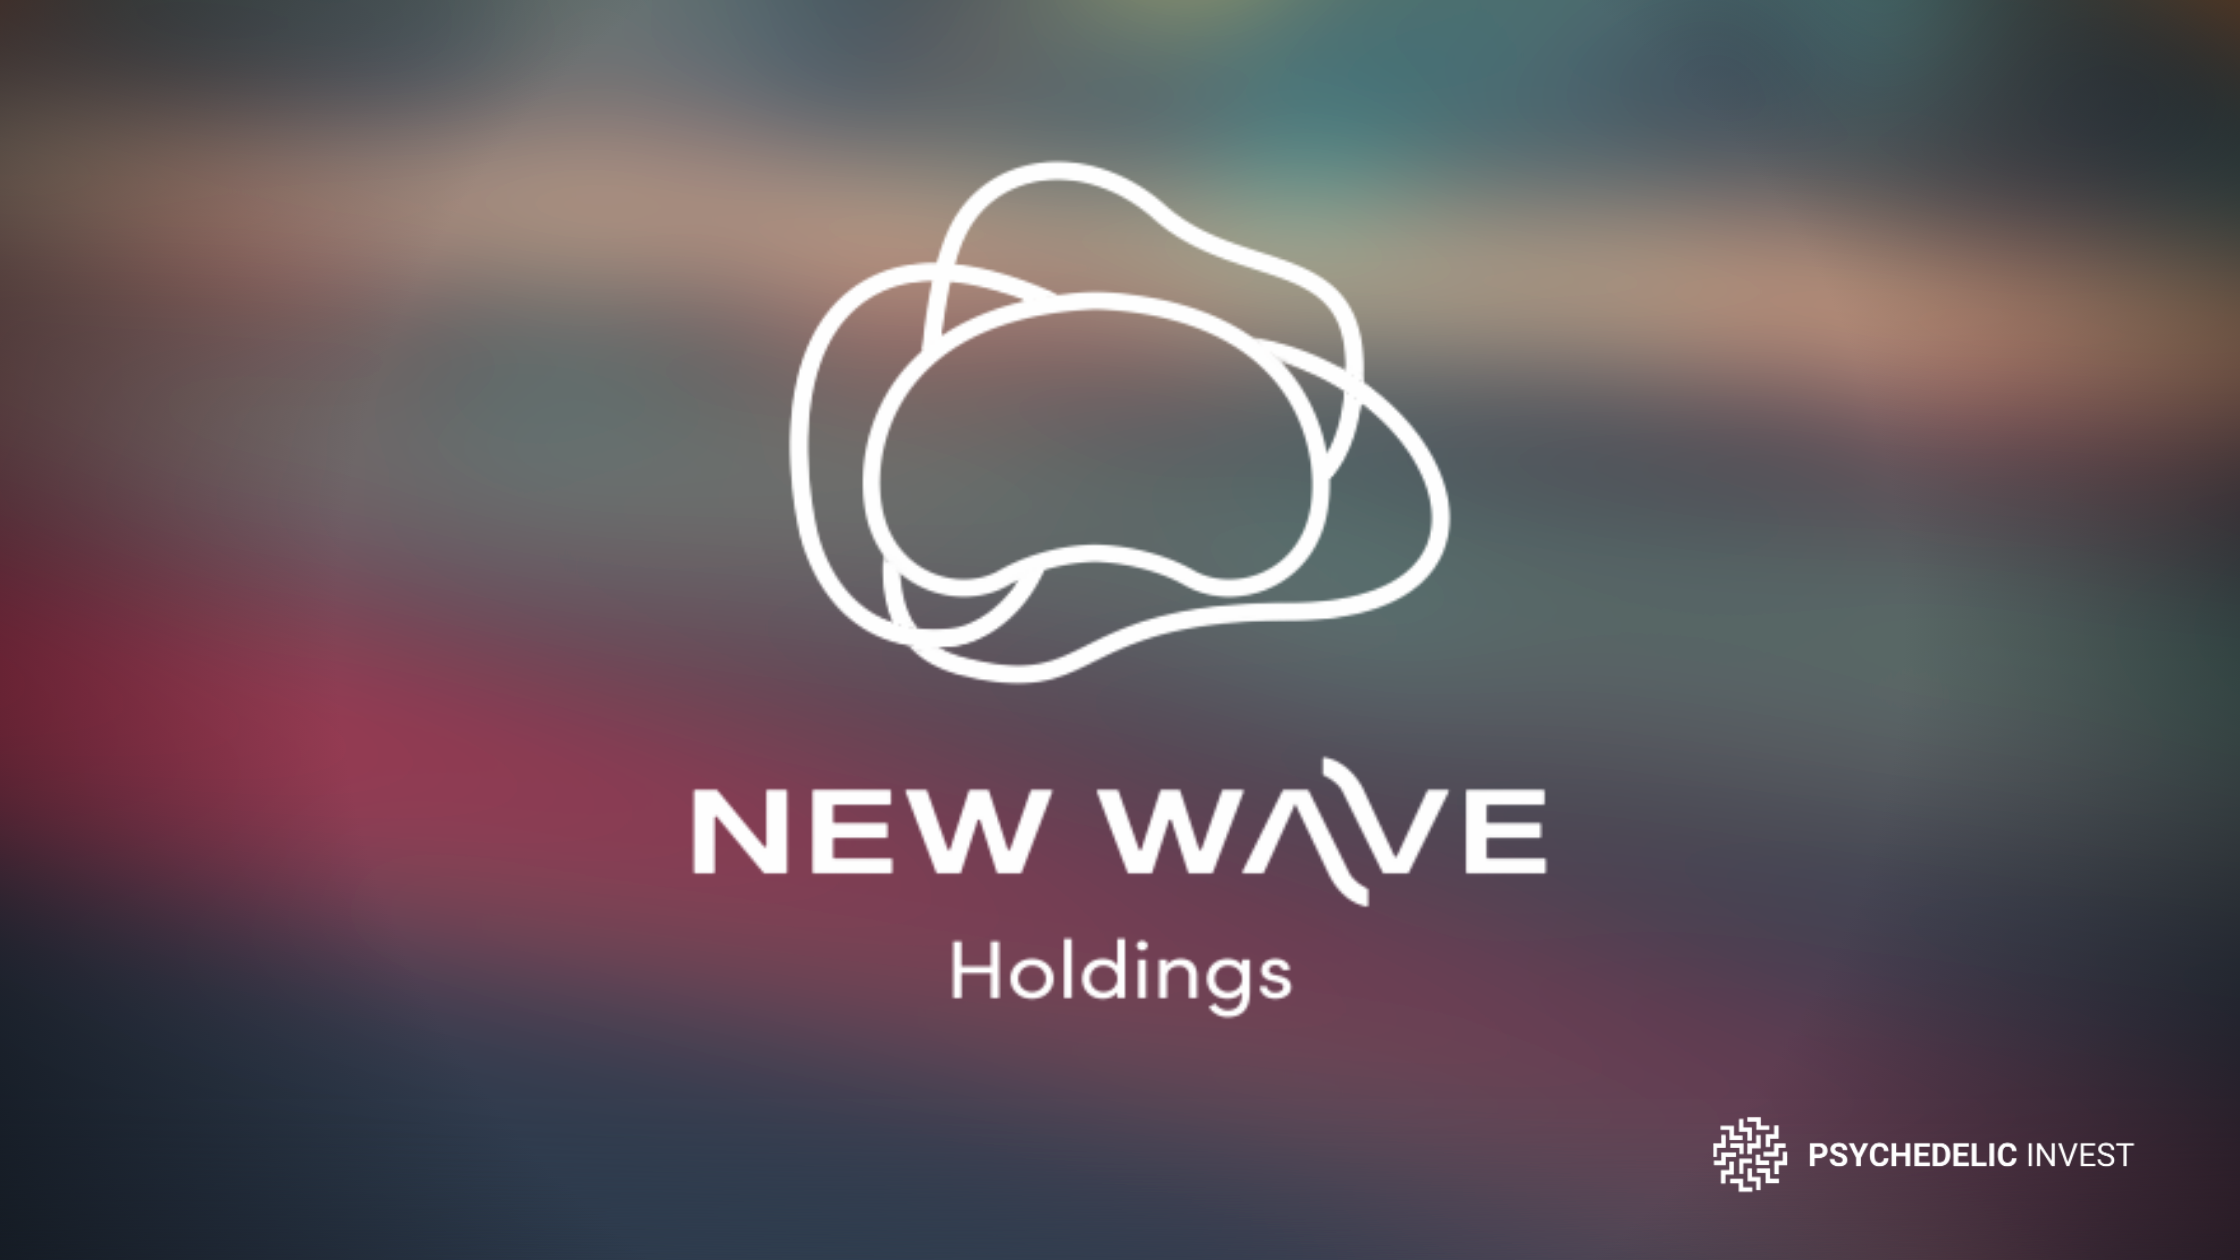 New Wave Holdings